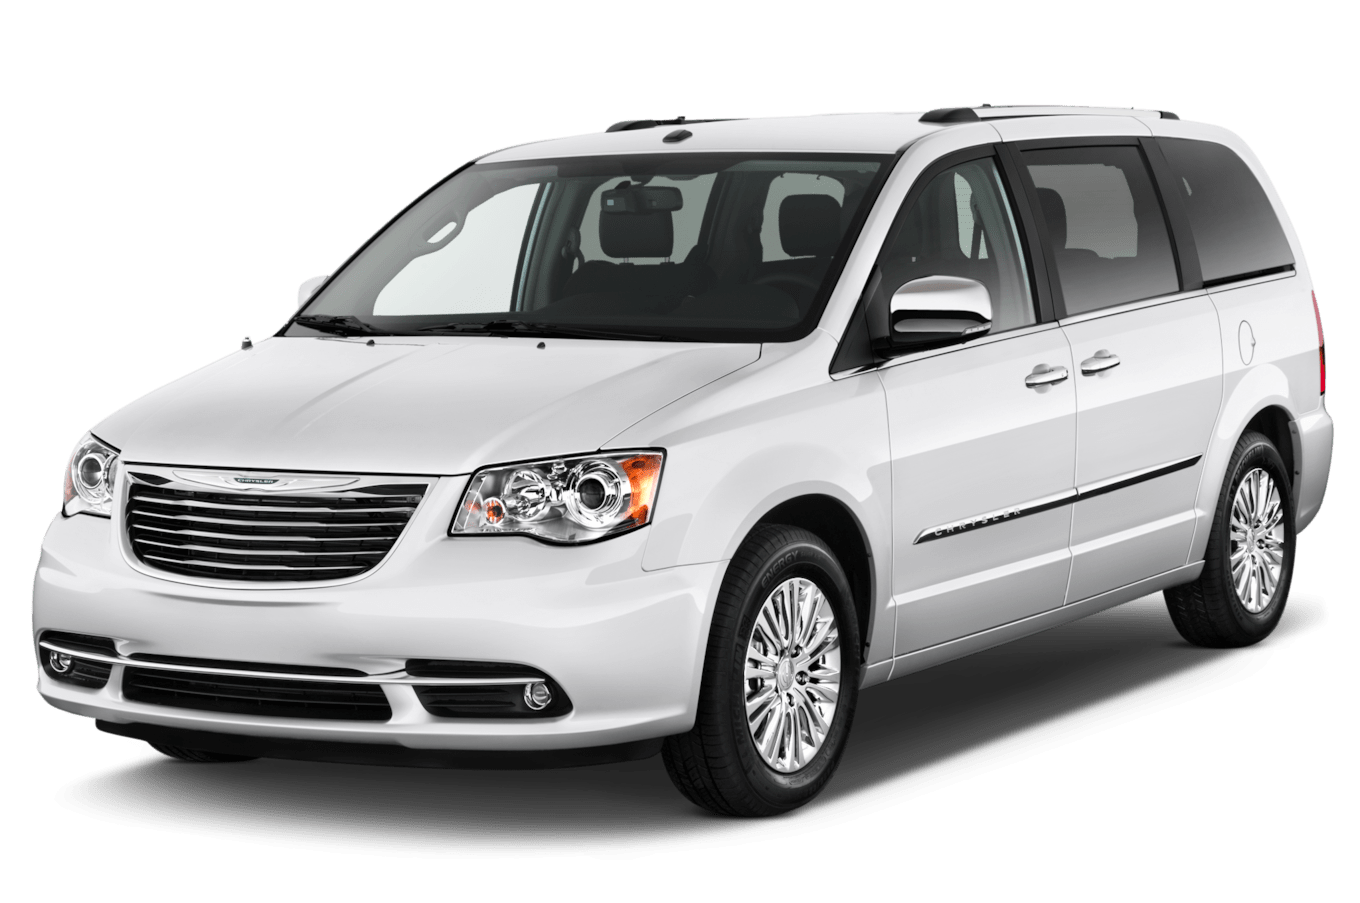 medium resolution of new 2012 dodge caravan and chrysler town country 36 fuse box 2012 chrysler town and country fuse box diagram 2012 chrysler town and country fuse box